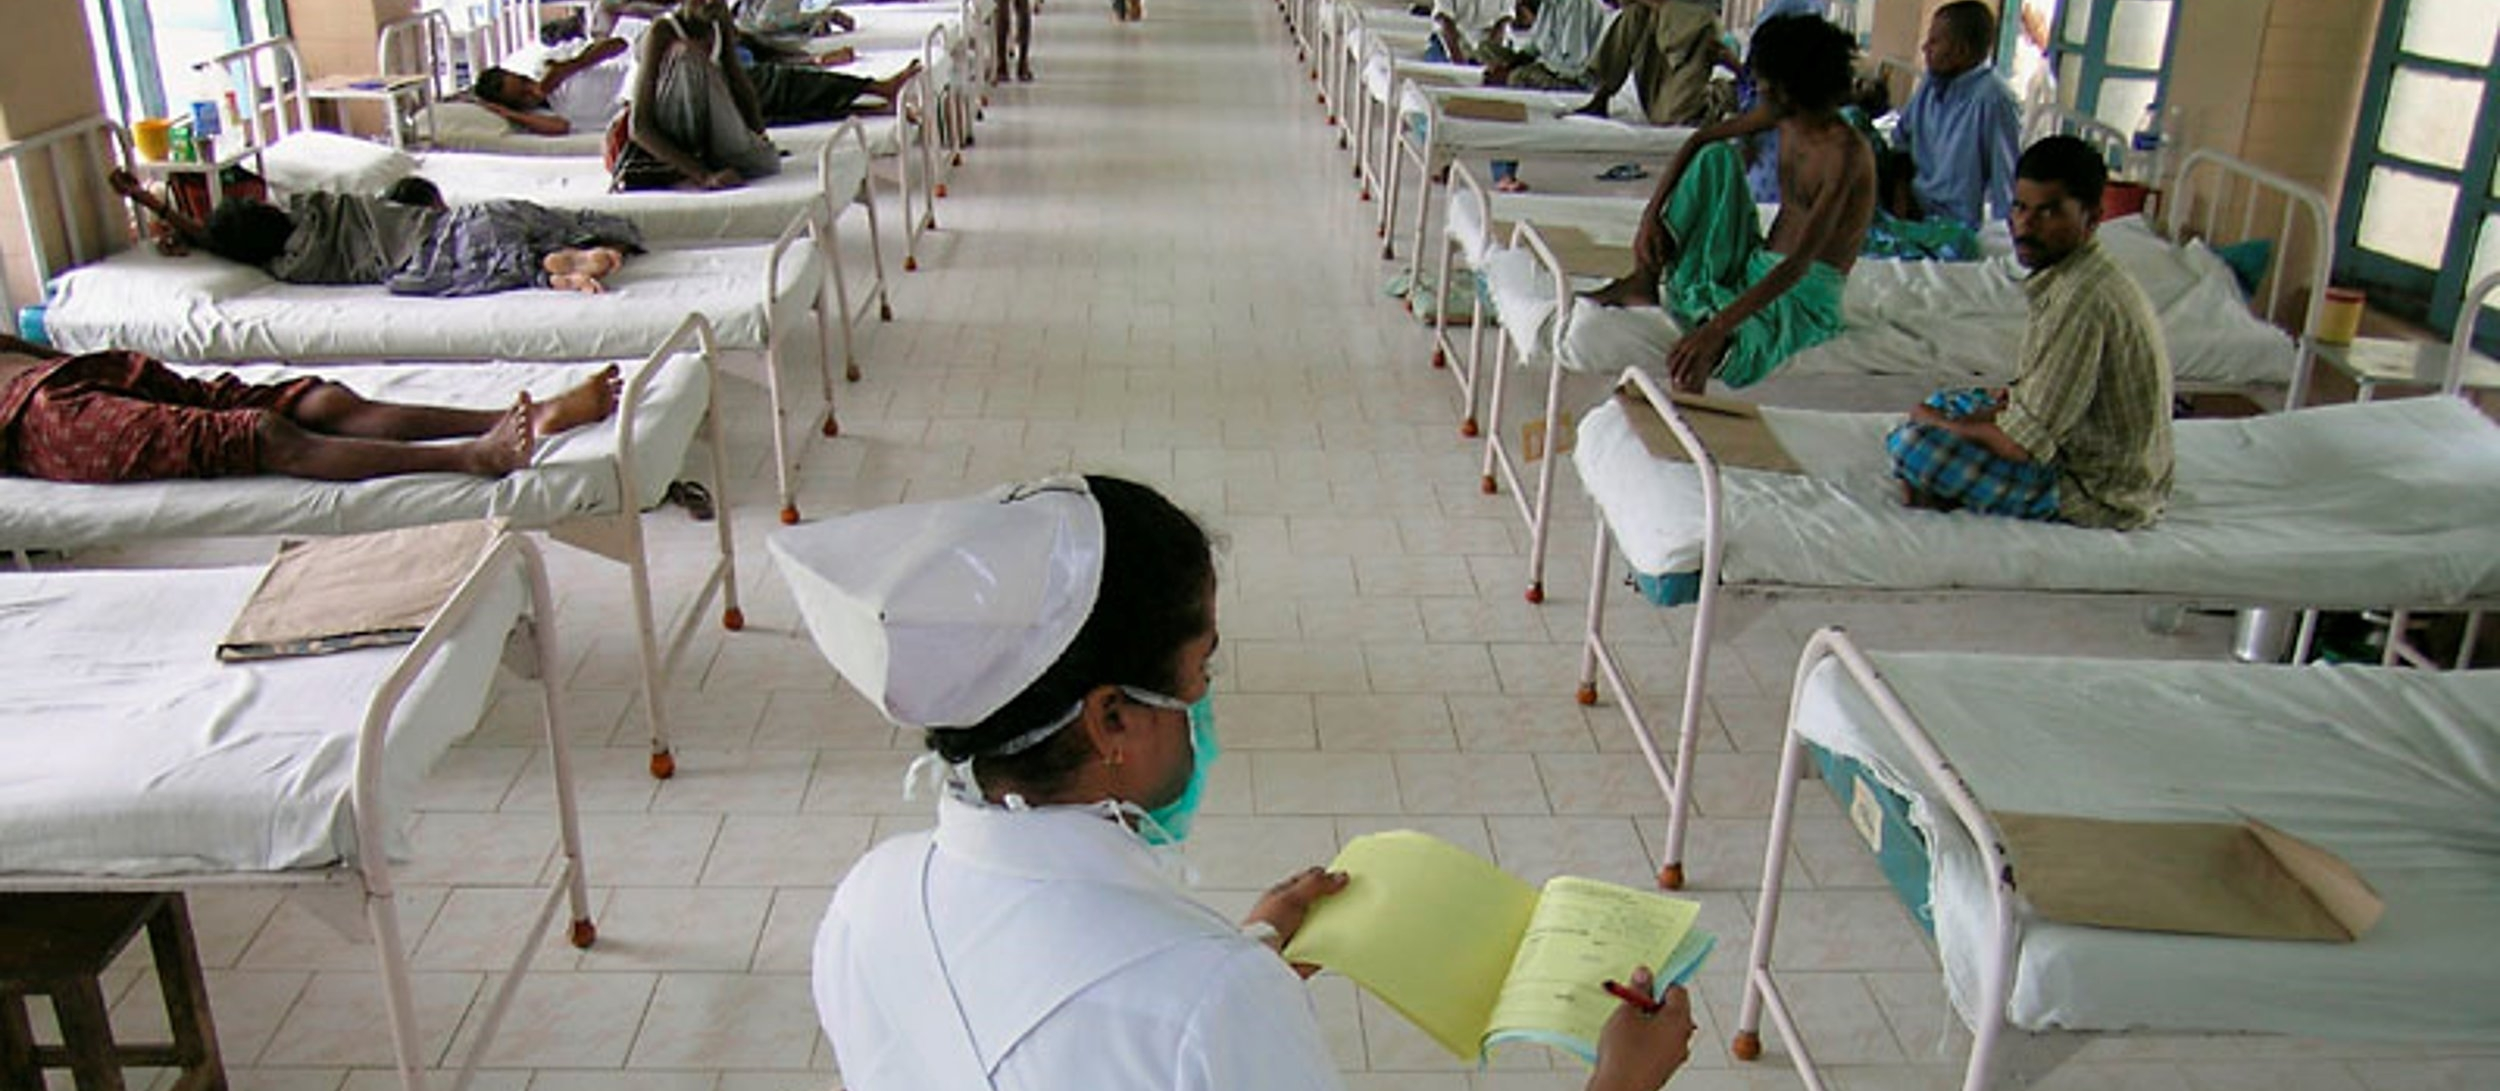 Hospital in India (photo from Natural Resources Defense Council)